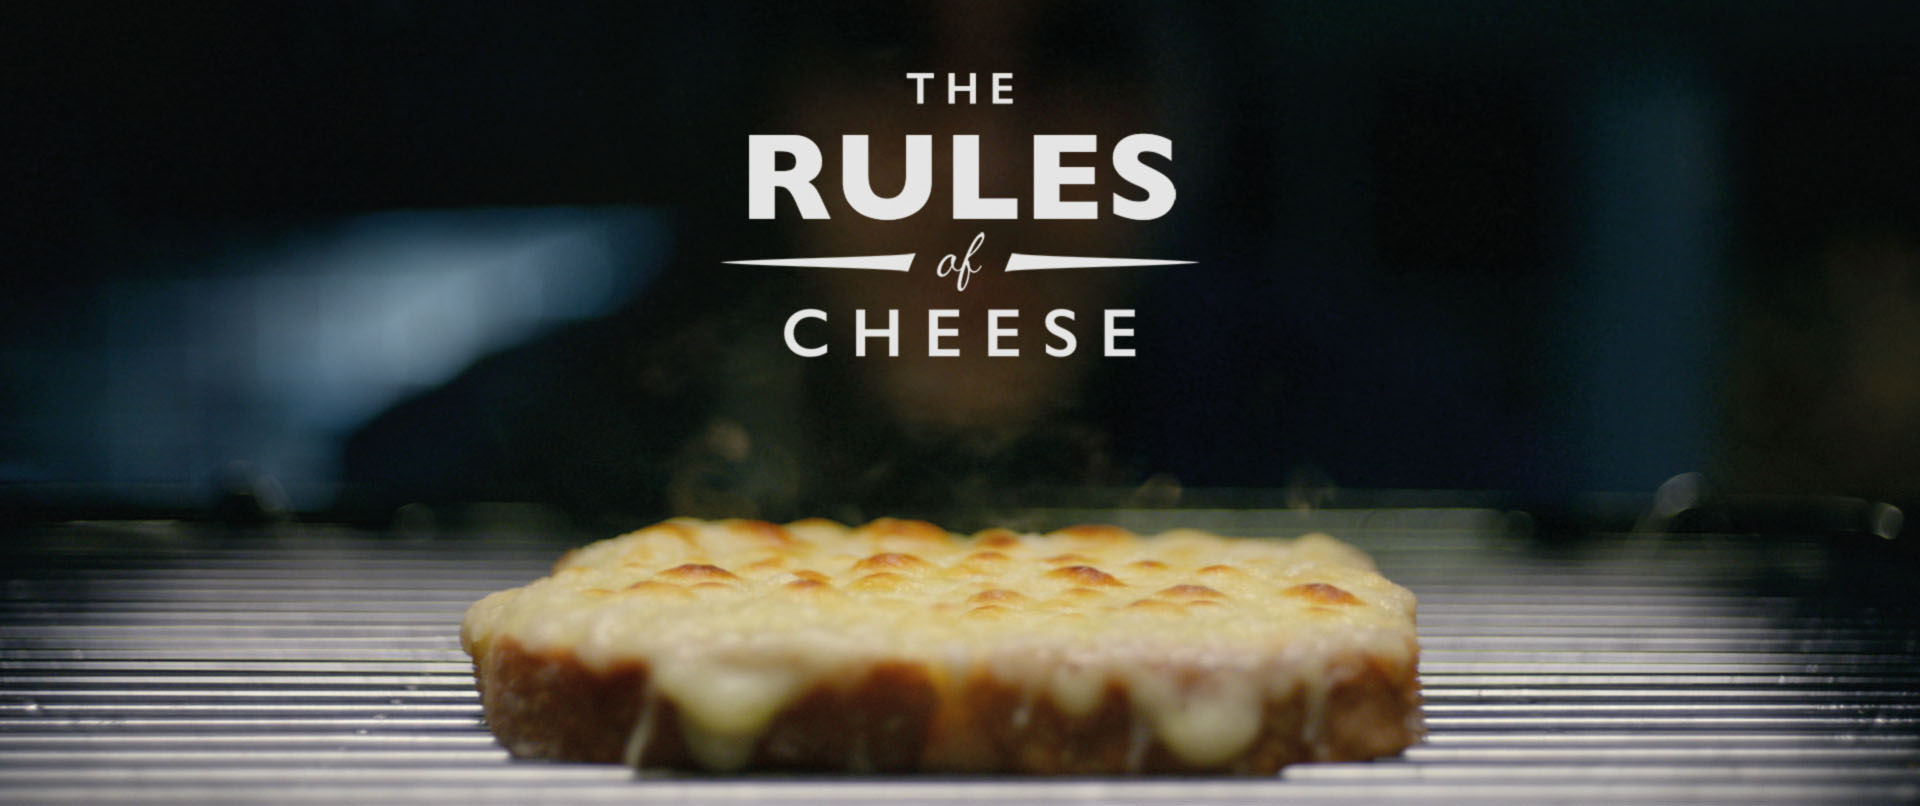 2D Cheese Rules 30sec Frm1..jpg